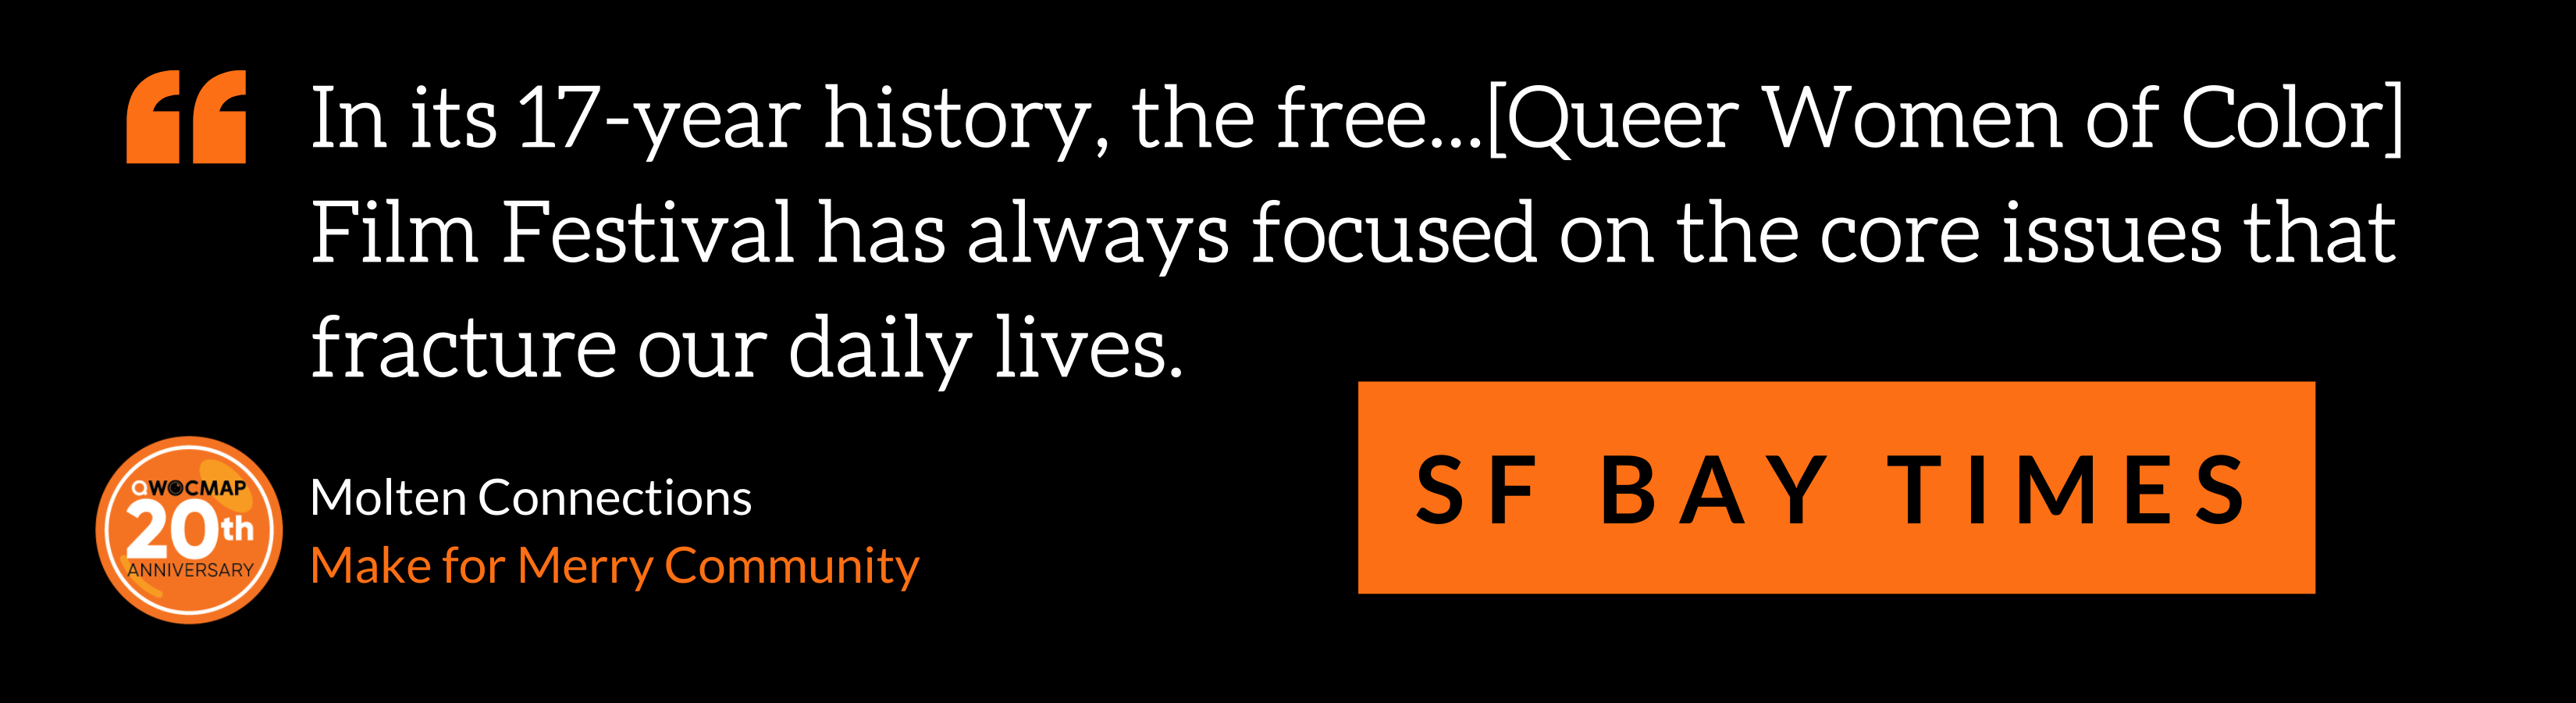 """On a black background, white text in orange quotation marks reads, """"In its 17-year history, the free…[Queer Women of Color] Film Festival has always focused on the core issues that fracture our daily lives."""" Below, black text in an orange box reads SF Bay Times. In the bottom left corner is the QWOCMAP 20th anniversary logo, and white and orange text that reads Molten Connections Make for Merry Community."""